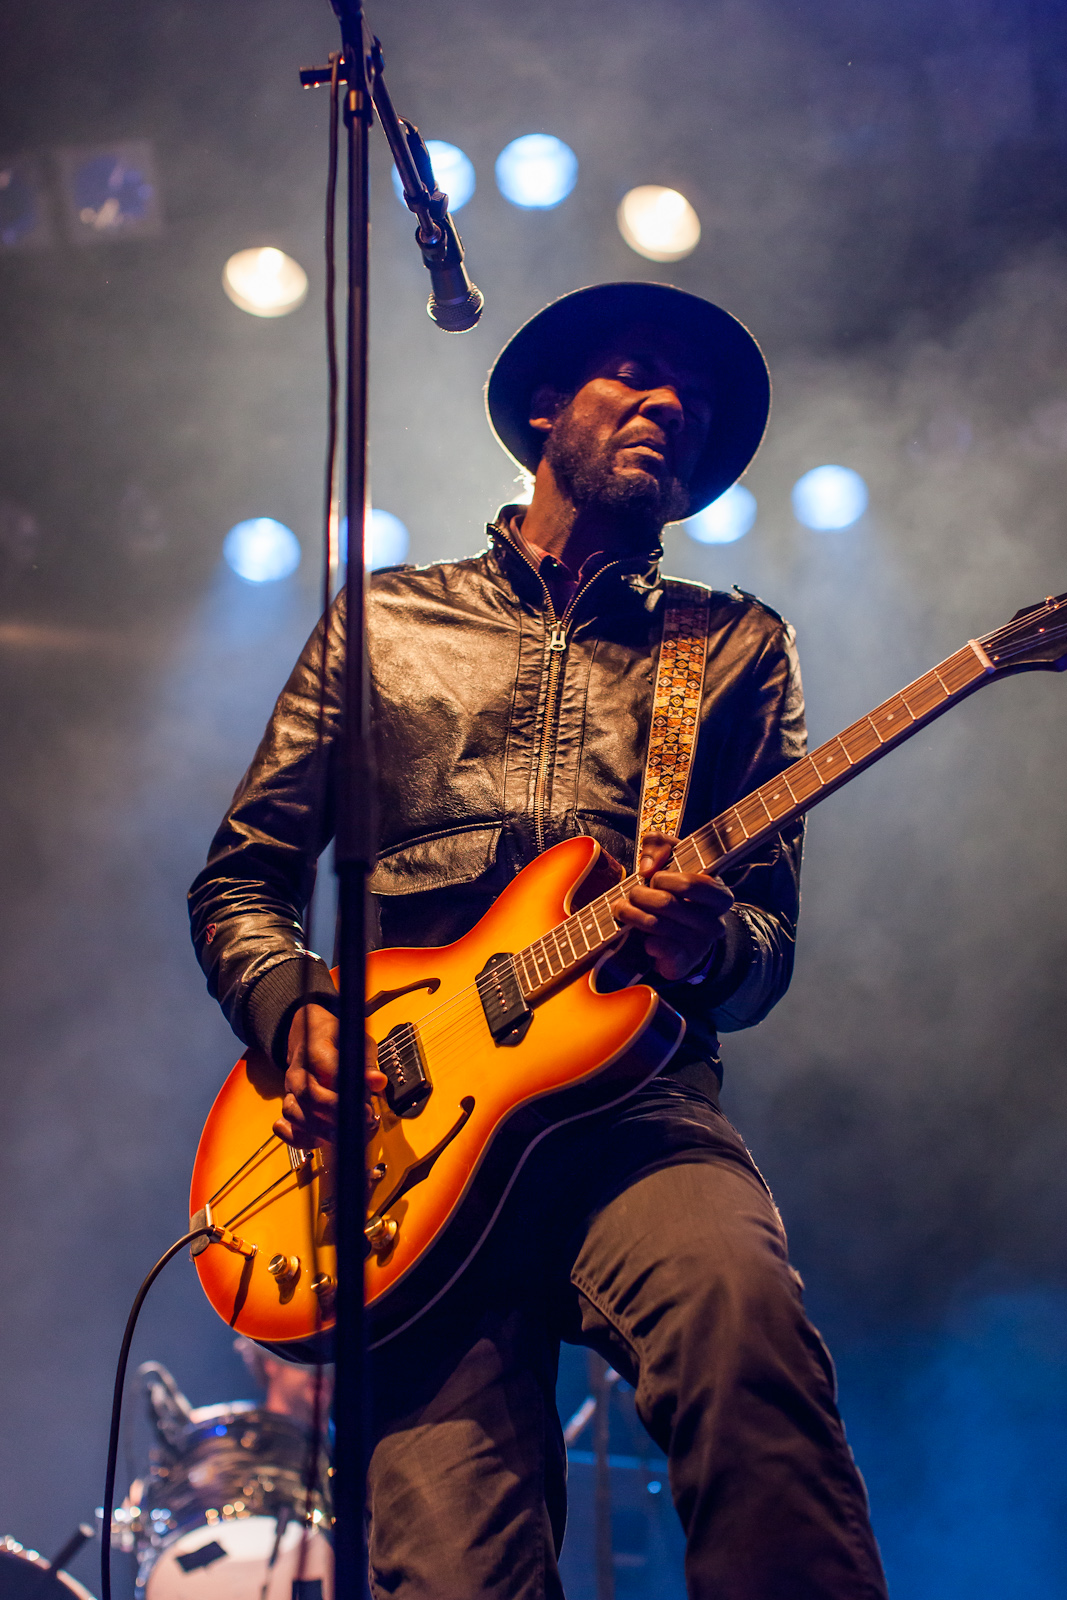 gary clark jr wikipedia la enciclopedia libre. Black Bedroom Furniture Sets. Home Design Ideas